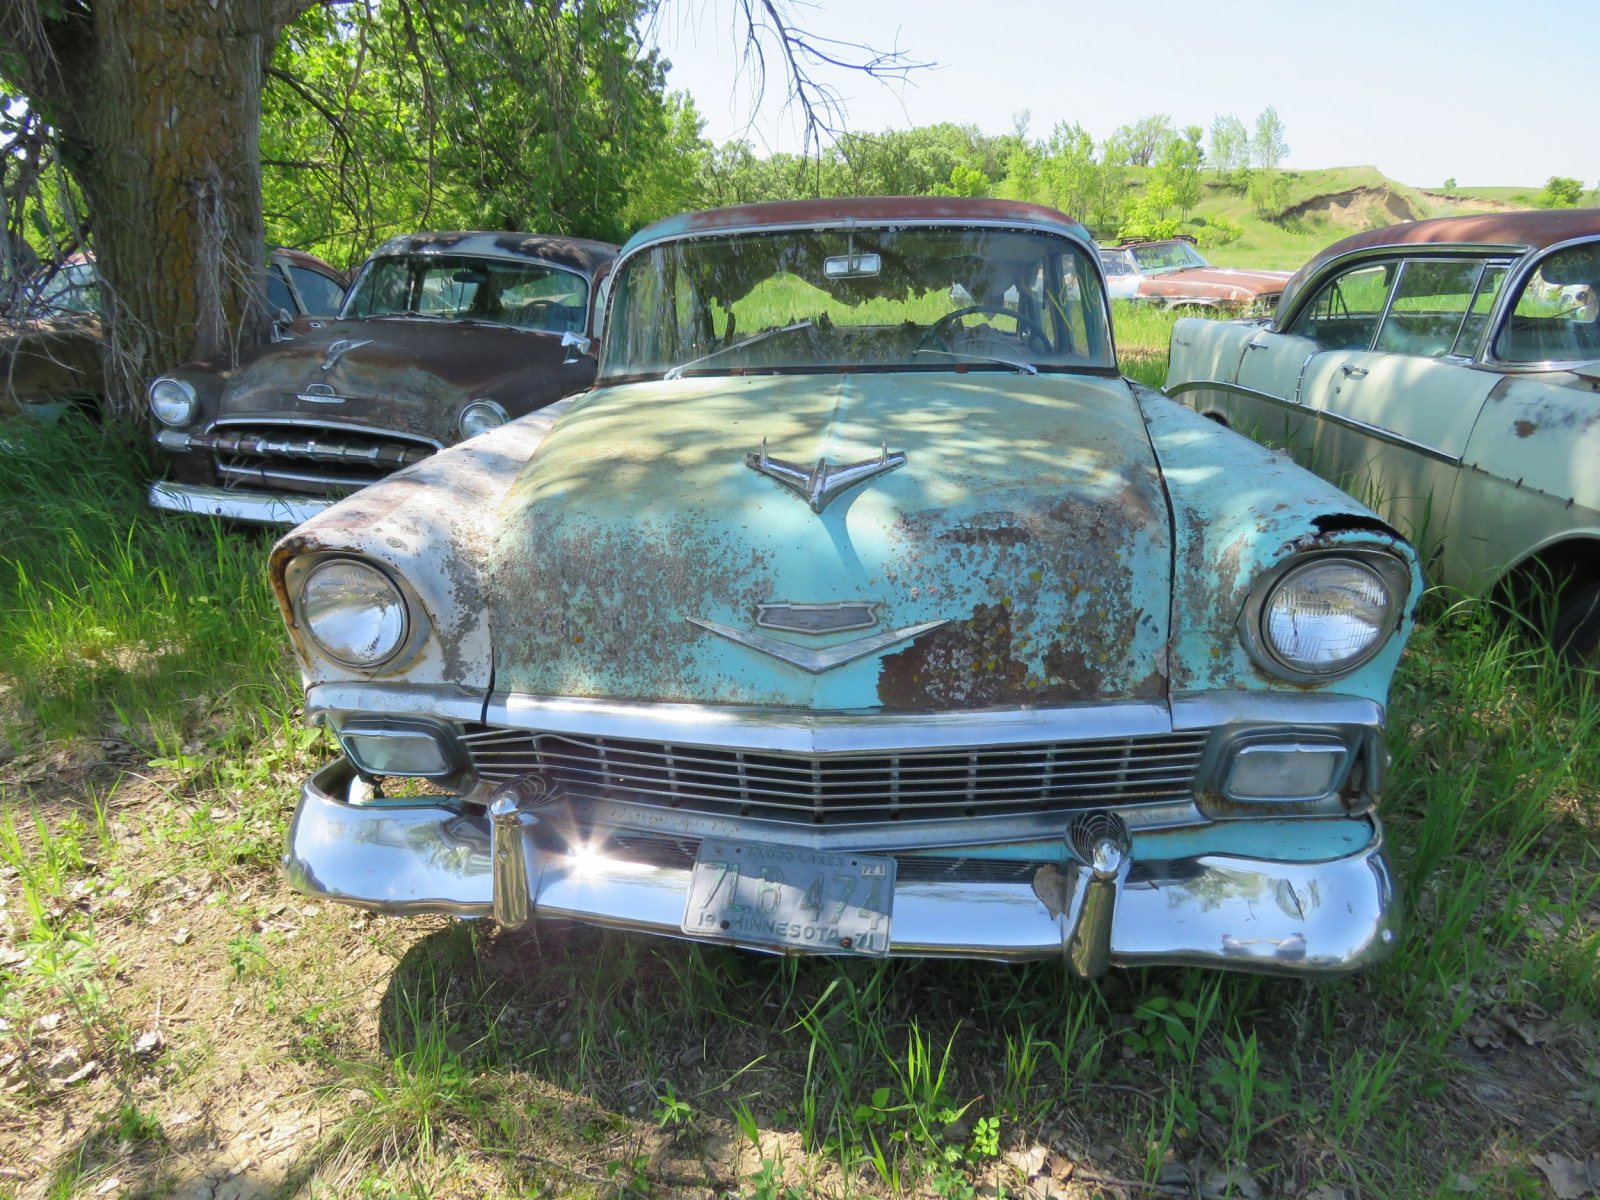 1956 Chevrolet Belair 4dr Sedan for Project or parts VC56J080987 - Image 2